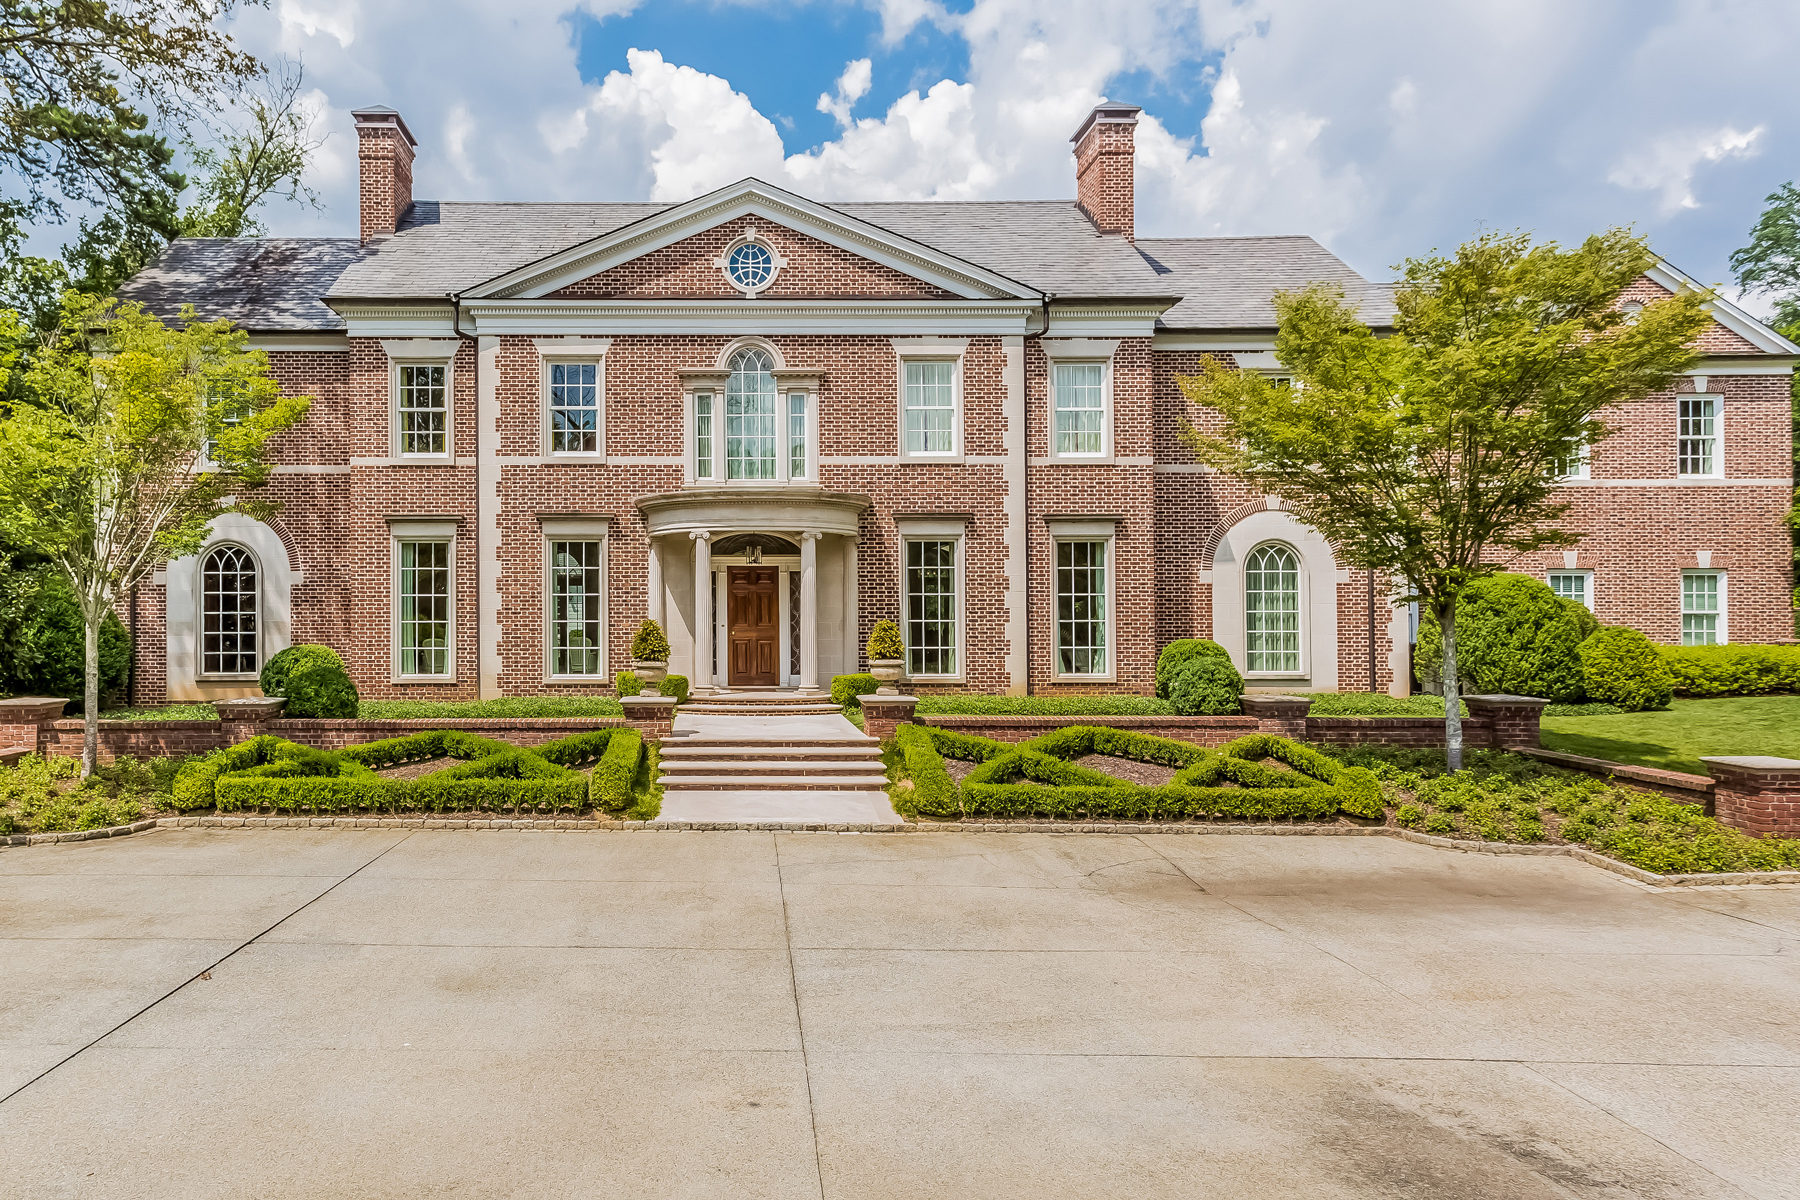 Single Family Home for Sale at Majestic Estate On 4 Pristine Acres 2750 Habersham Road Buckhead, Atlanta, Georgia, 30305 United States